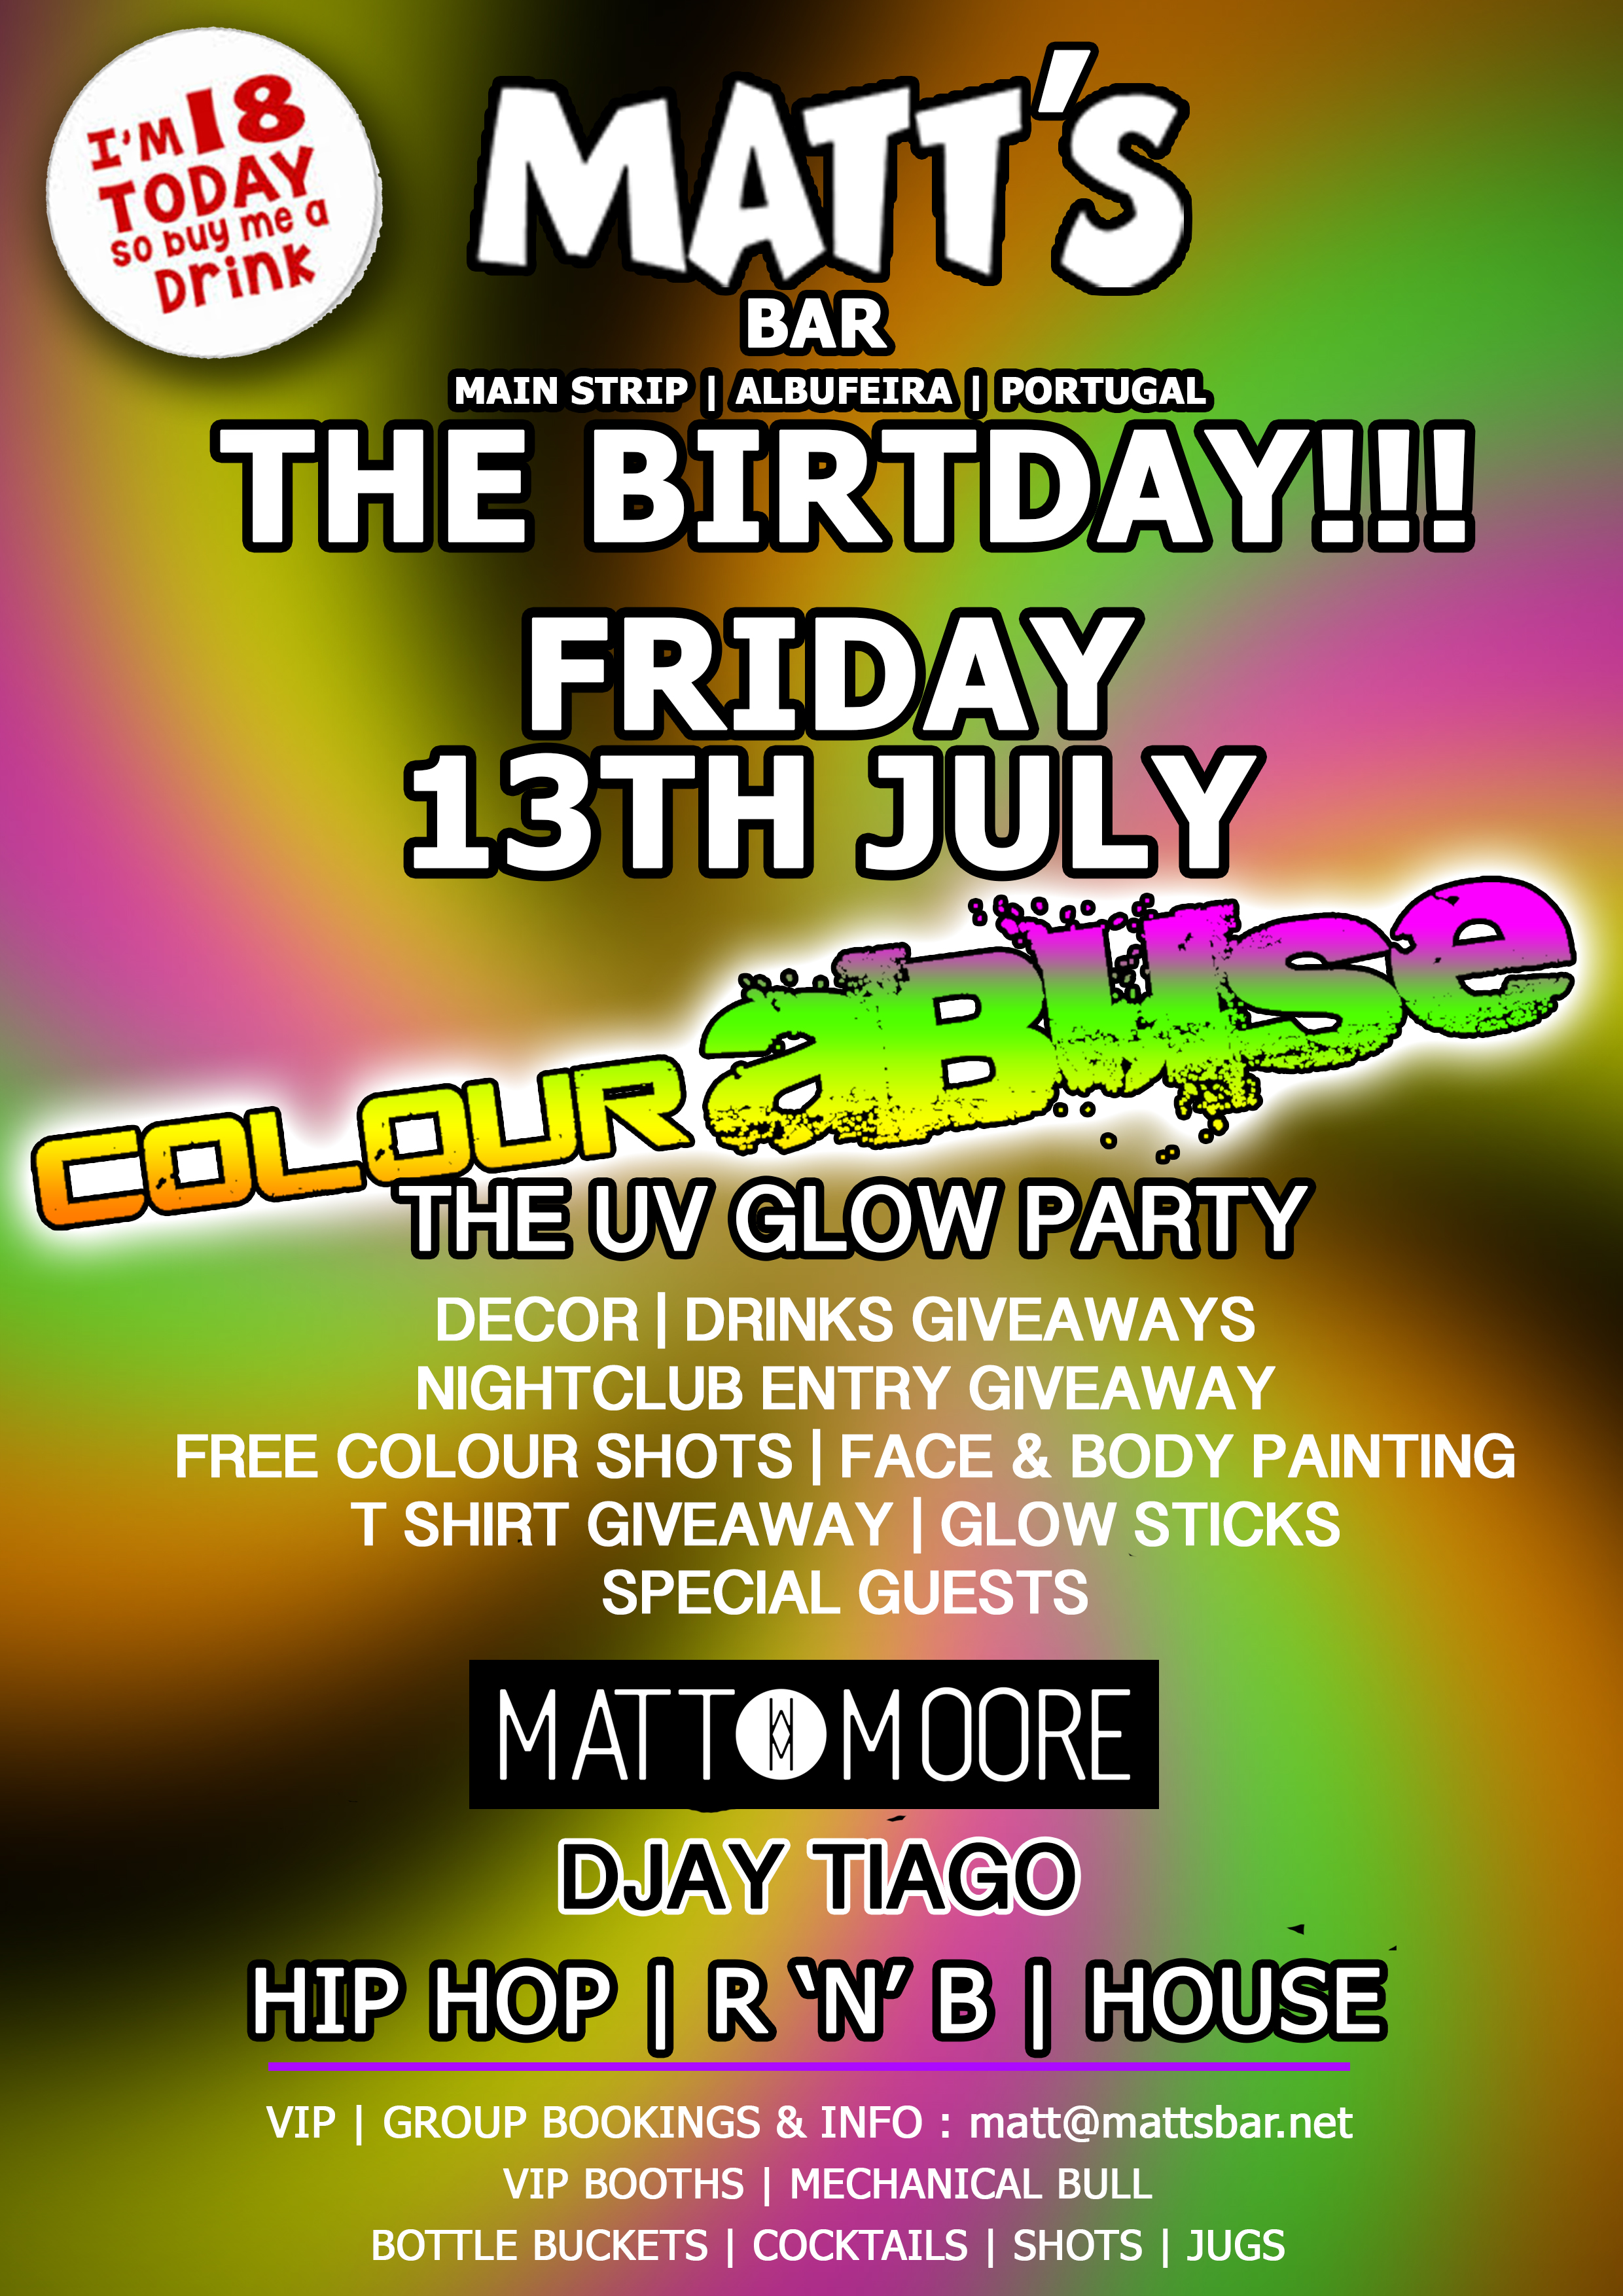 MATTS BAR BIRTHDAY COLOUR ABUSE UV